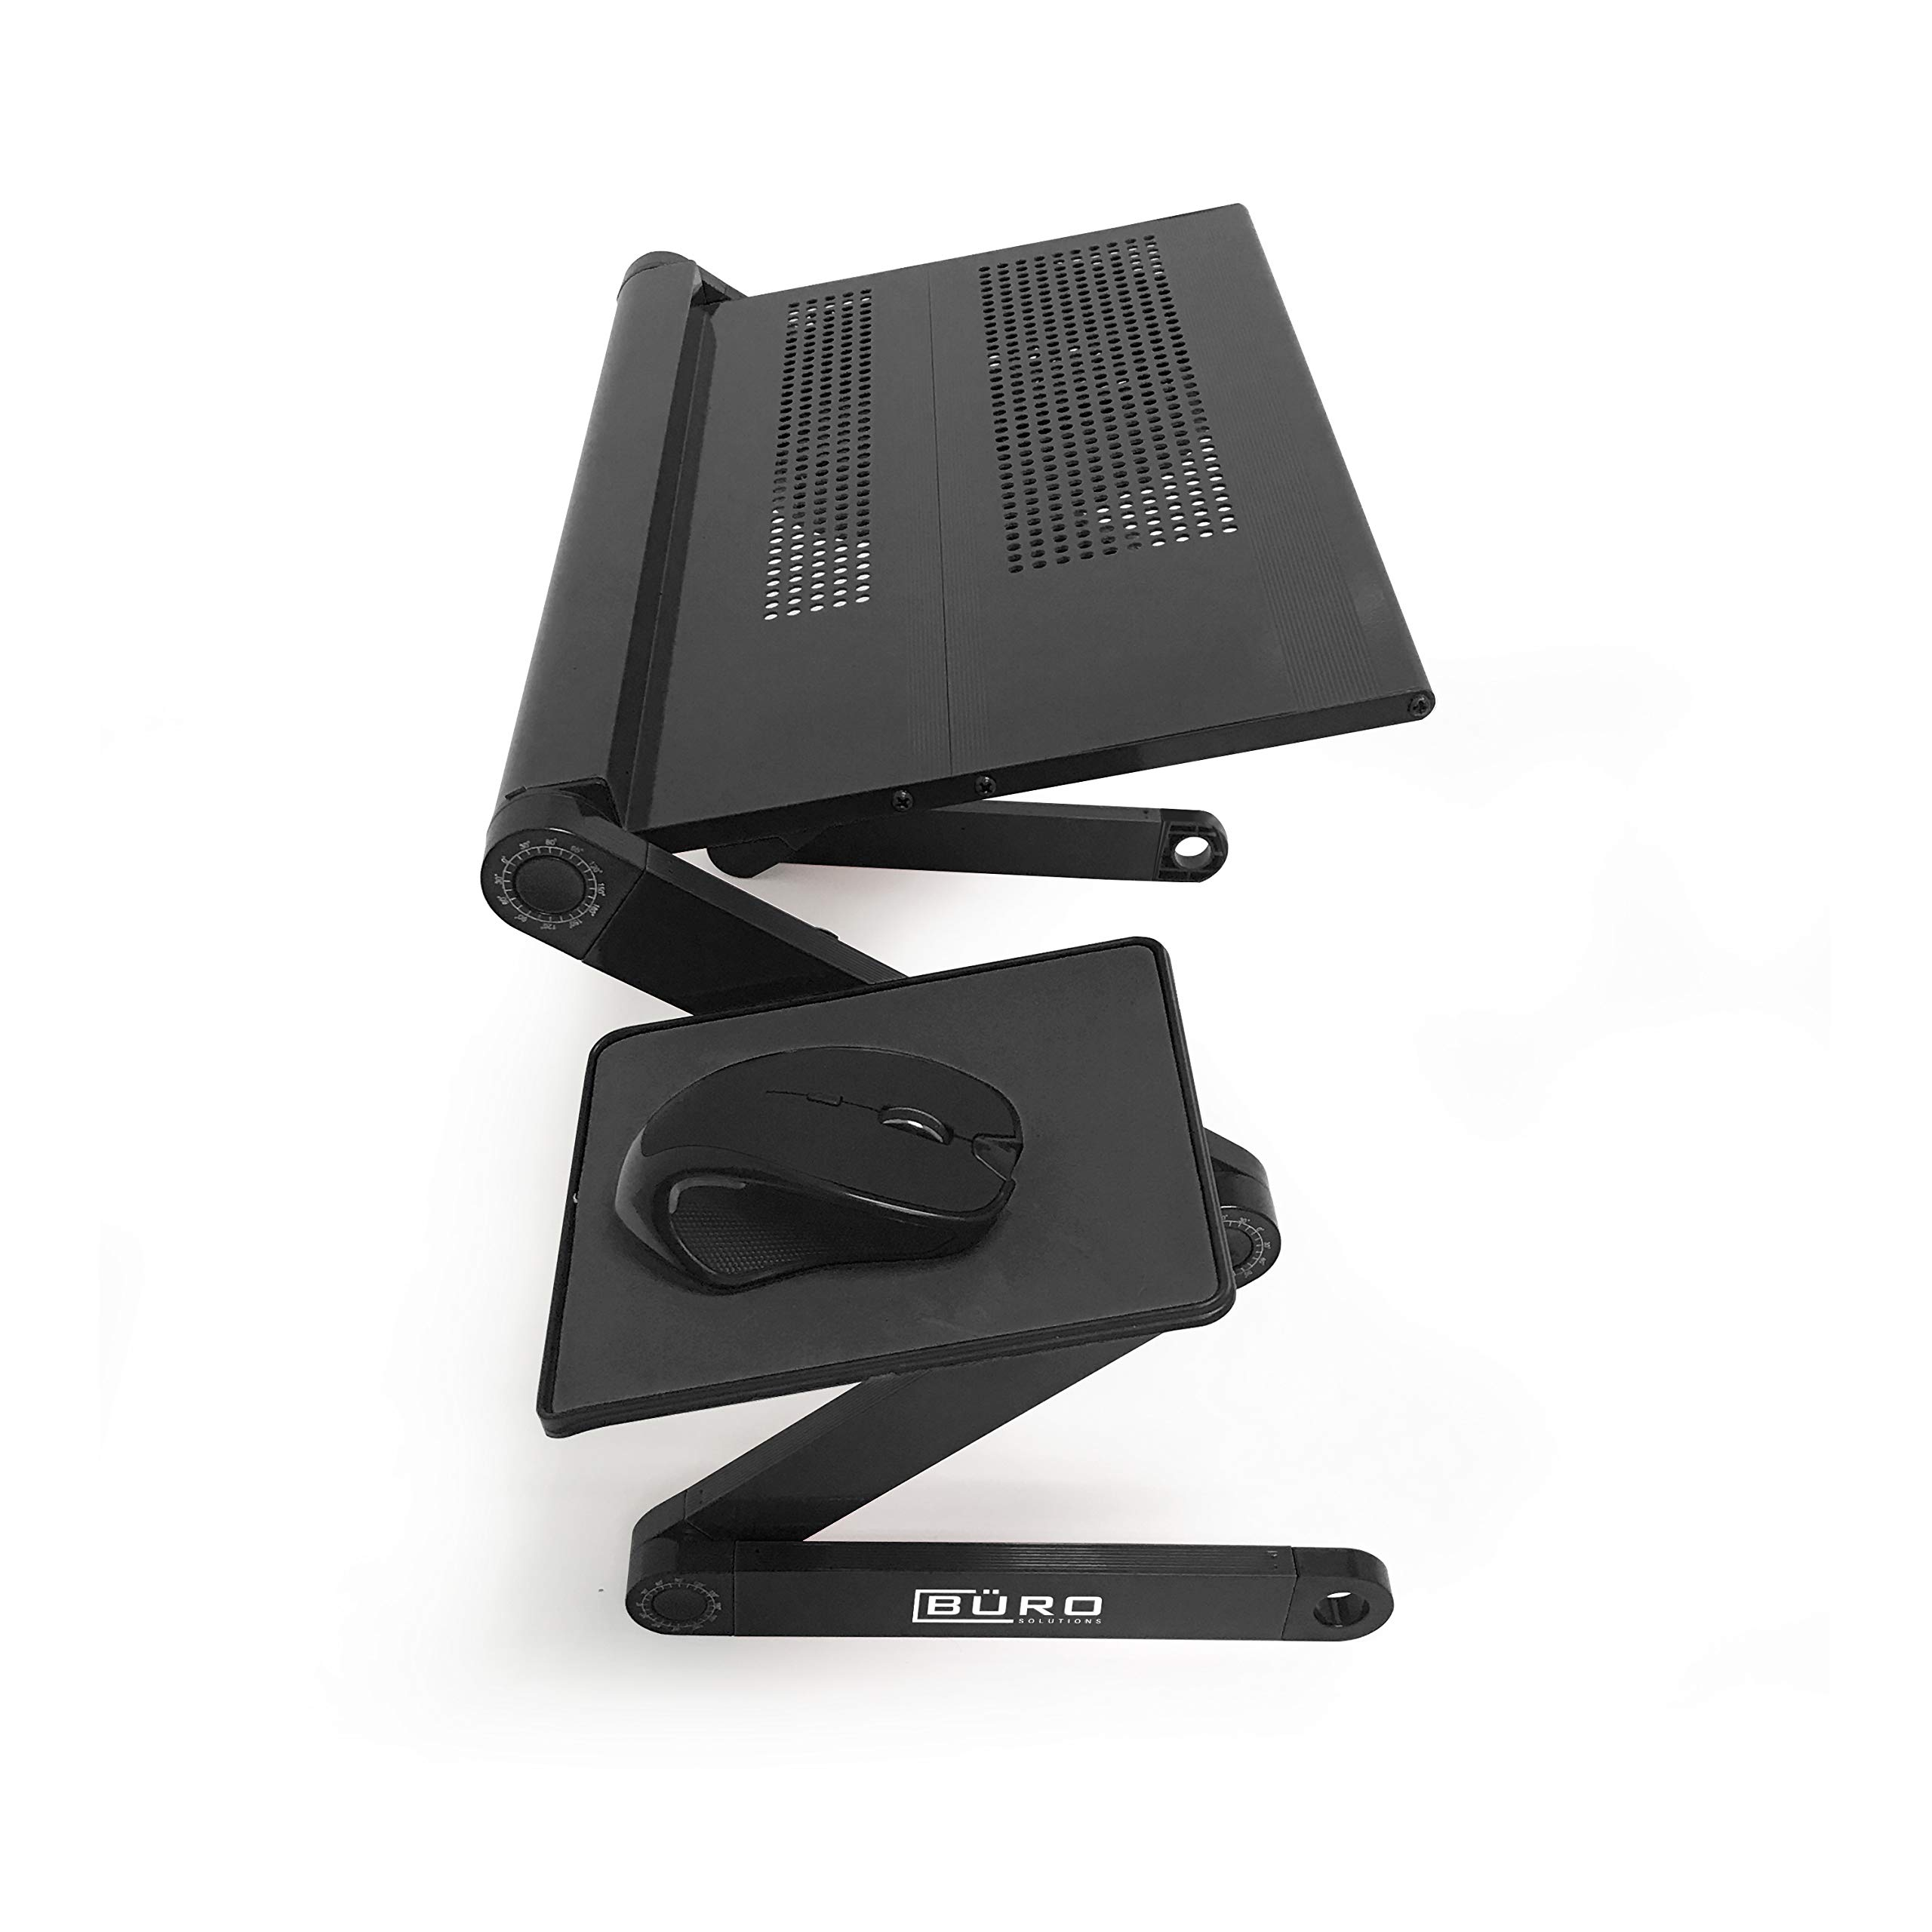 Height Laptop Holder is Adjustable for Desk Or Bed with Mouse and Mouse-pad | Black Color | Laptop Table Top with Vented Stand for Cooling | Comes with Side Tray for Mouse